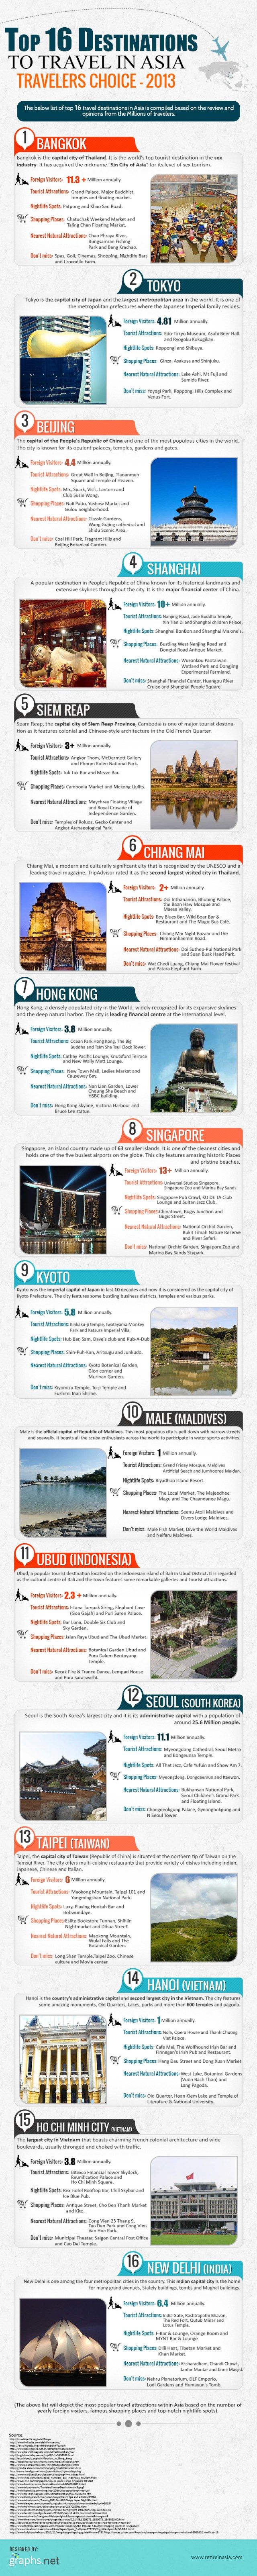 Top-16-destinations-to-travel-in-Asia